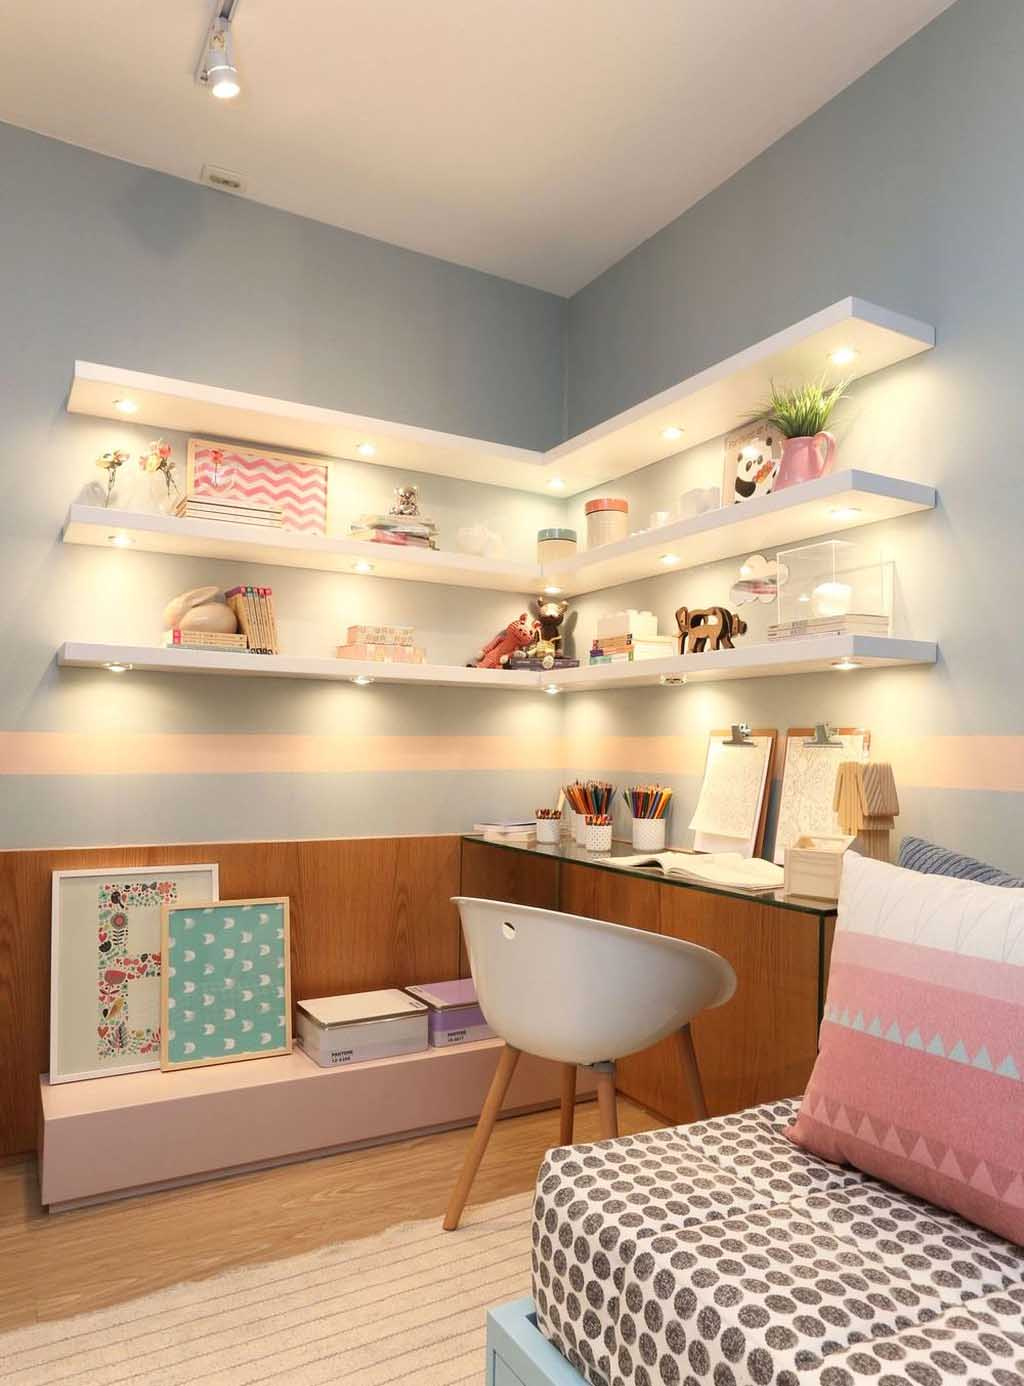 Lighted Space-Saving Corner Shelves for Girl's Room